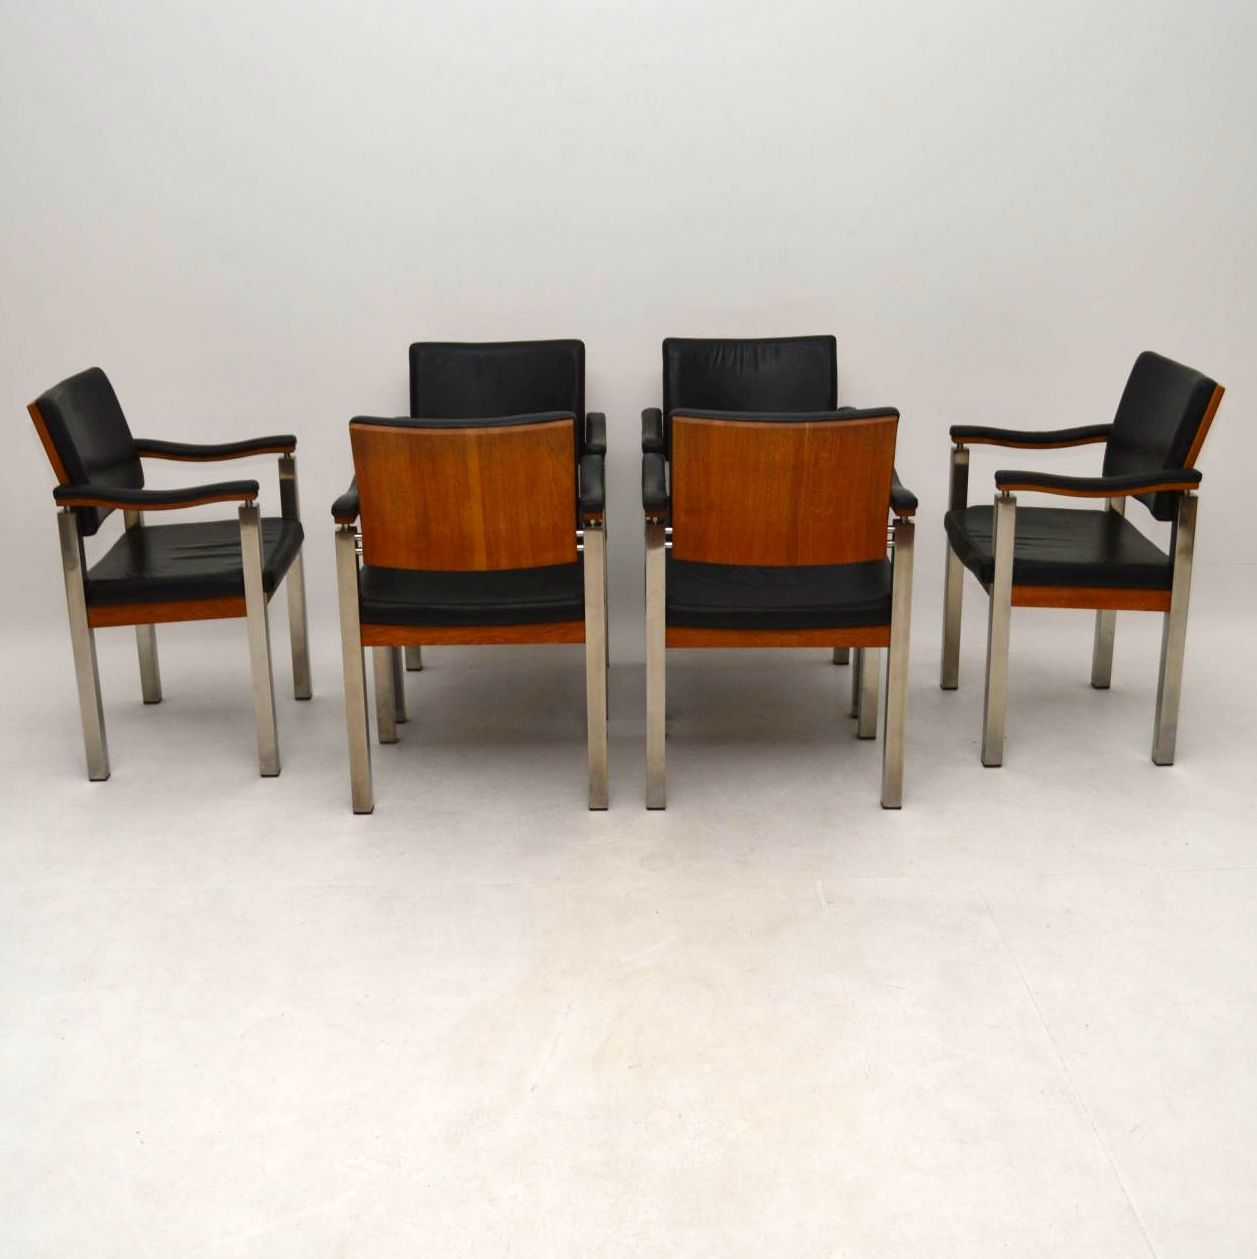 Set of 6 vintage dining chairs in teak leather and chrome